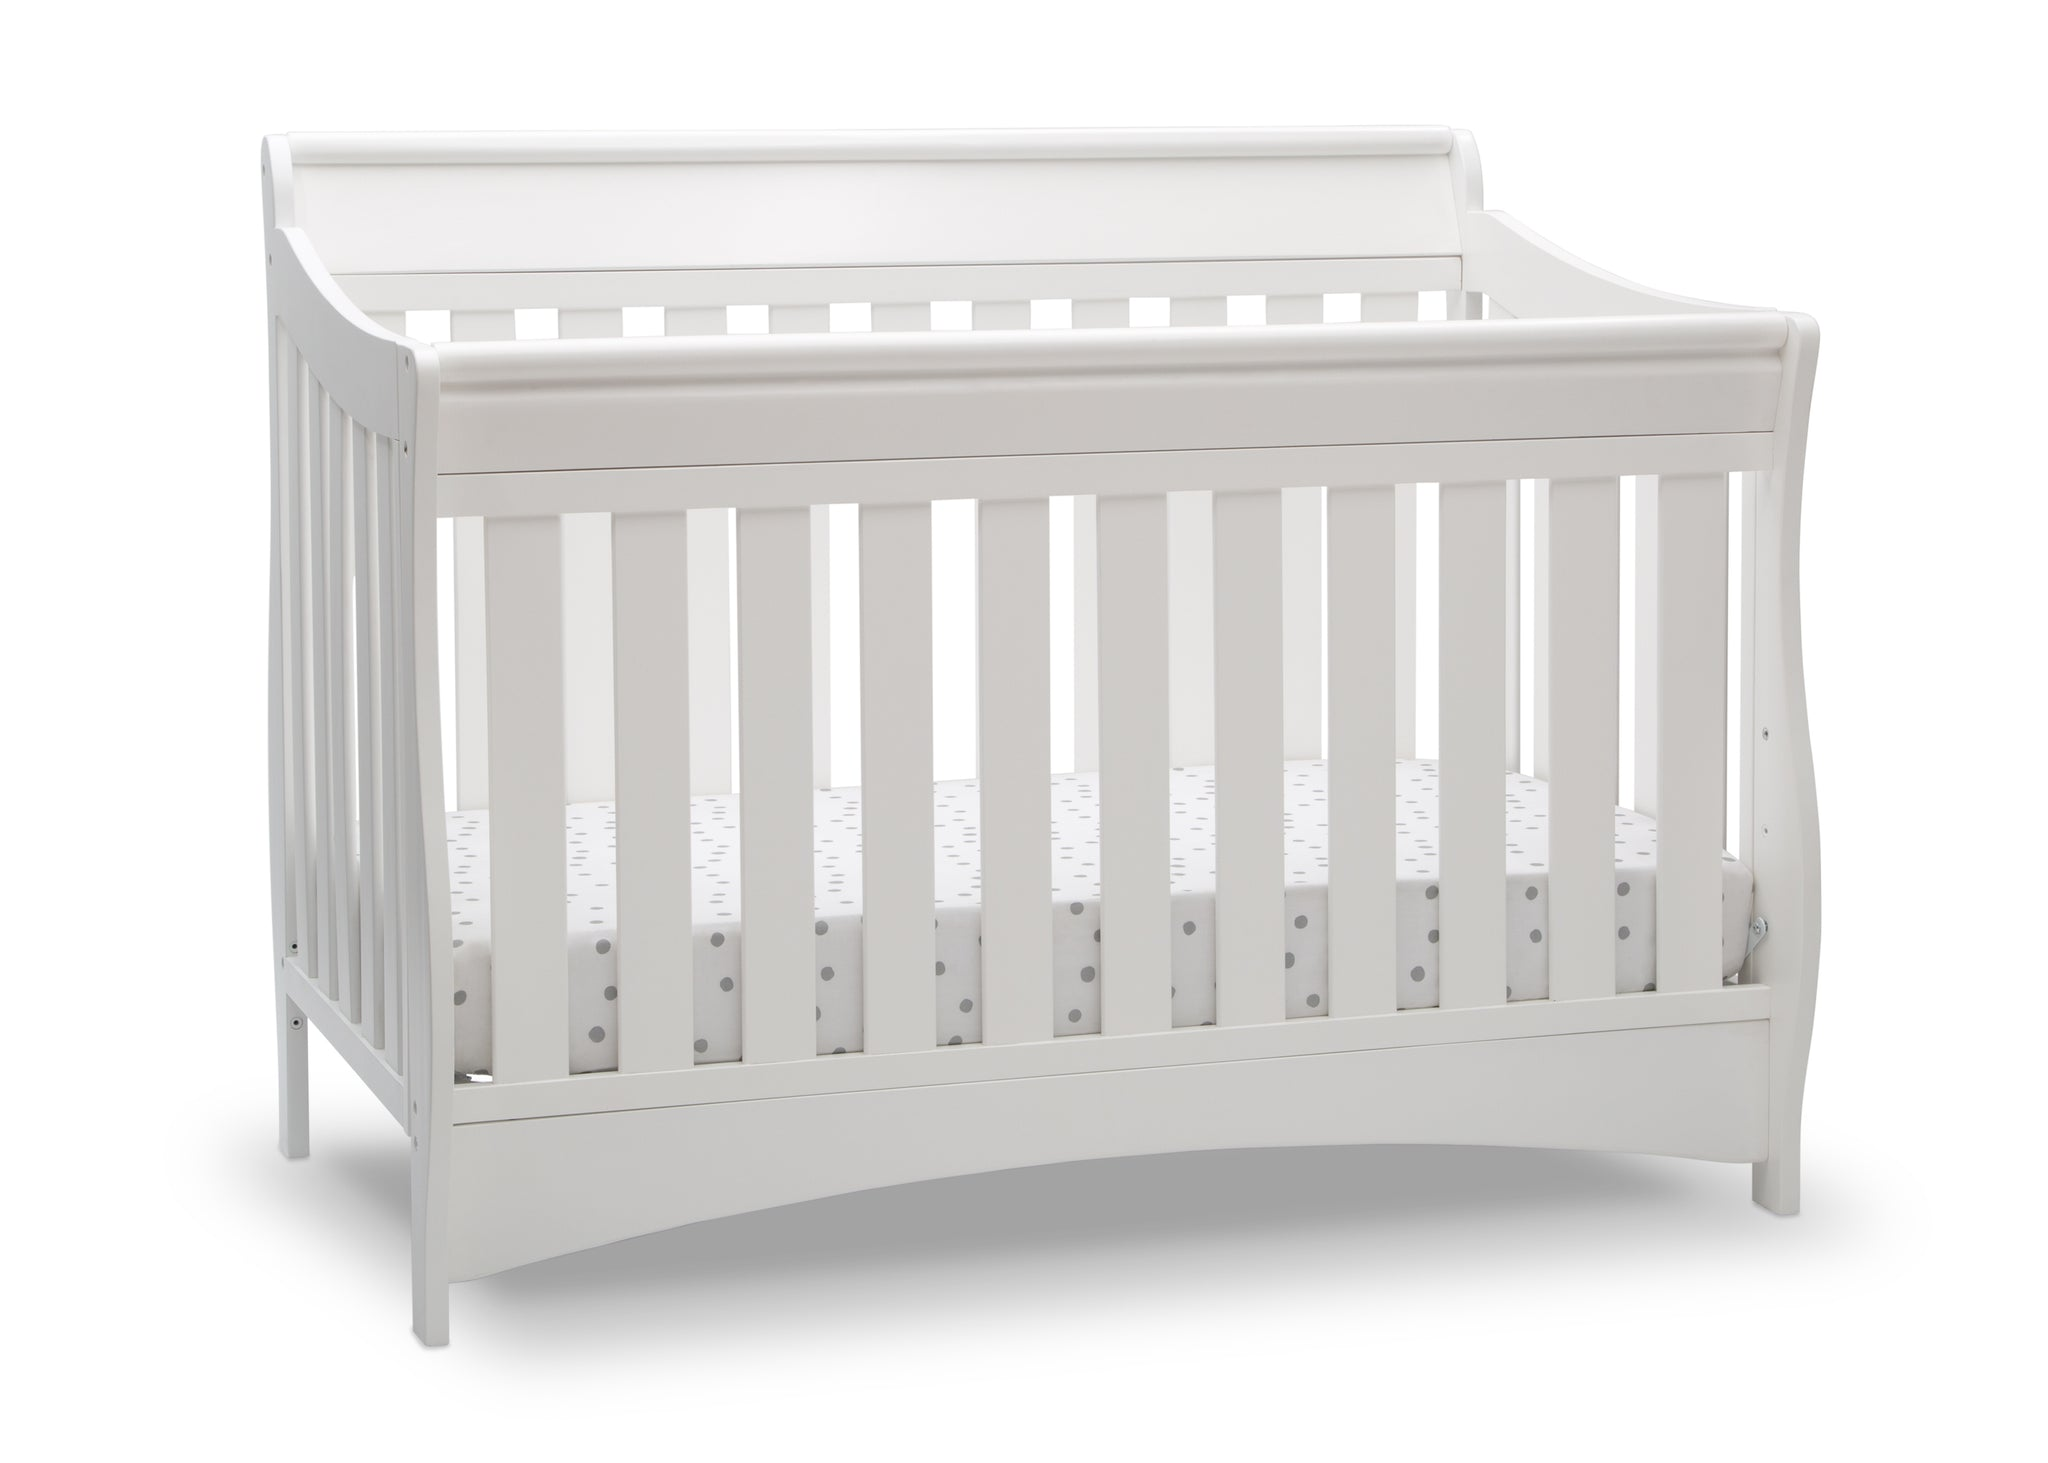 Delta Children Bianca White (130) Bentley S Series Deluxe 6-in-1 Convertible Crib, Right Crib Silo View